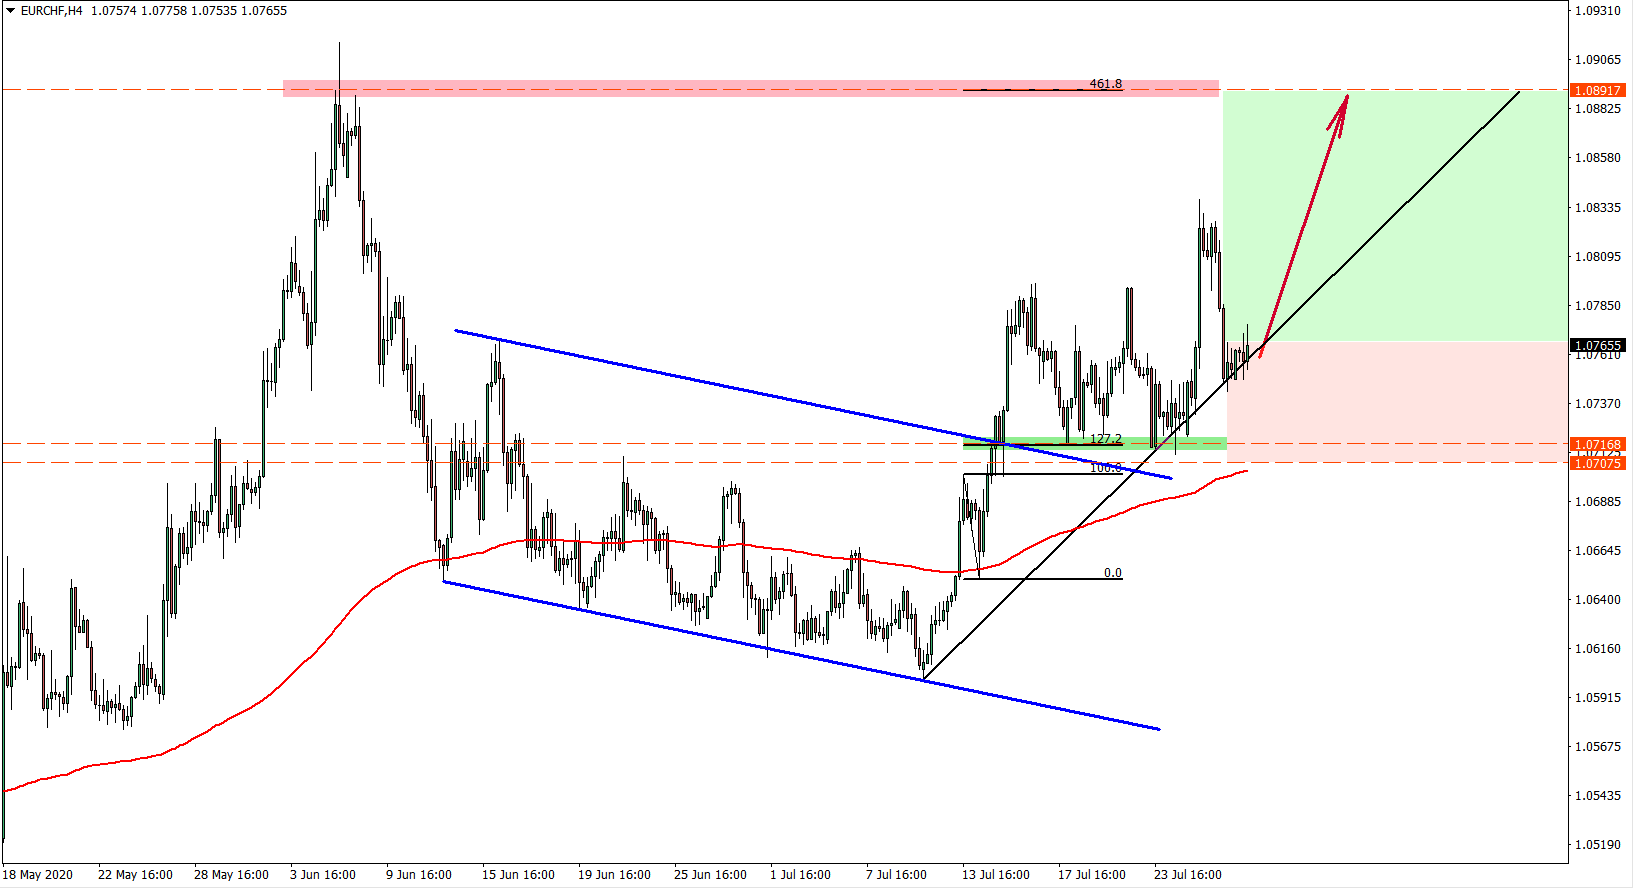 EURCHF 4 hour chart July 29th 2020